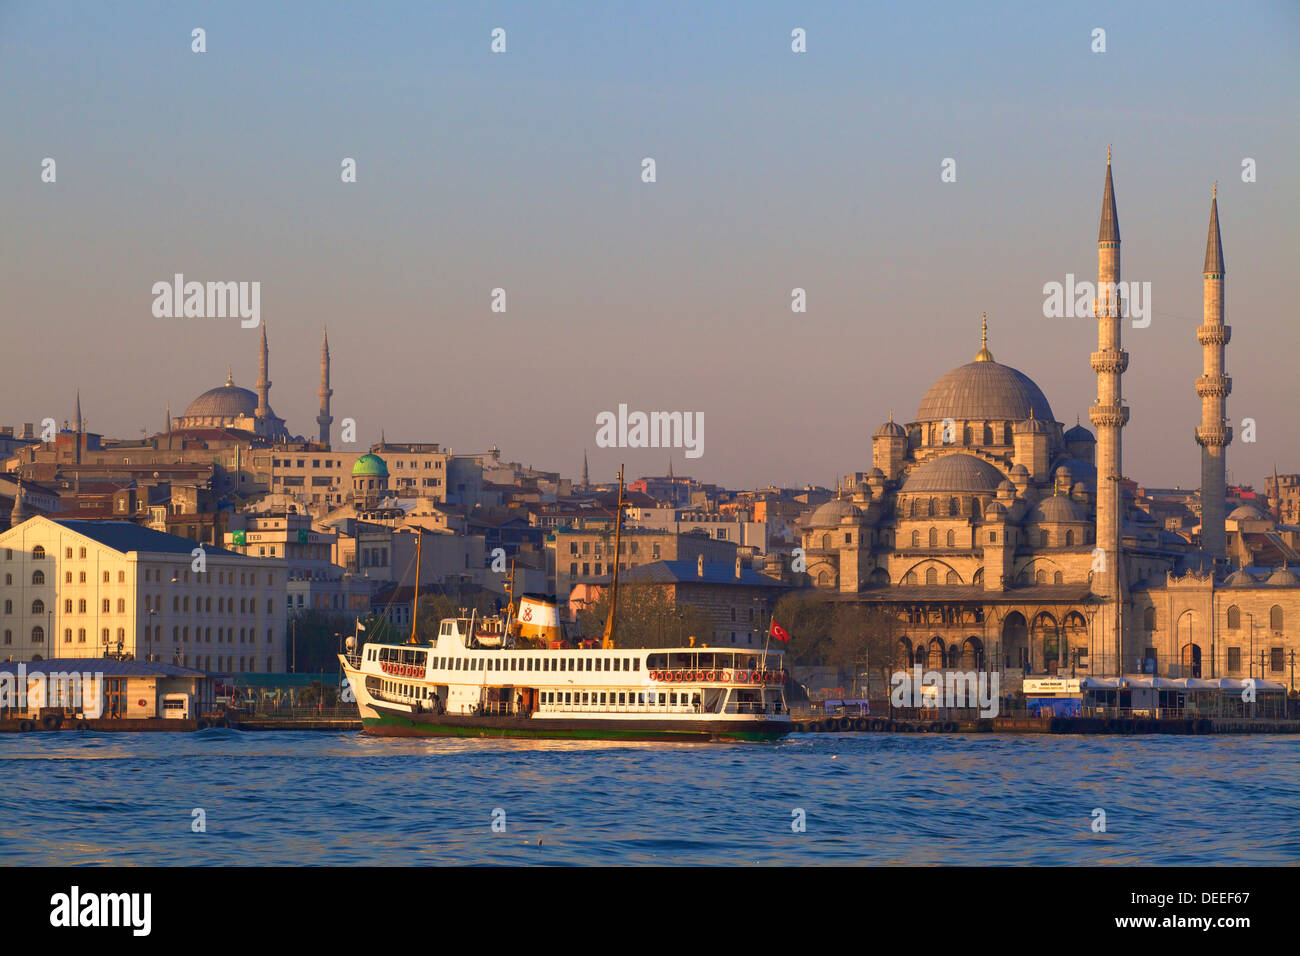 New Mosque, Golden Horn, Istanbul, Turkey, Europe - Stock Image